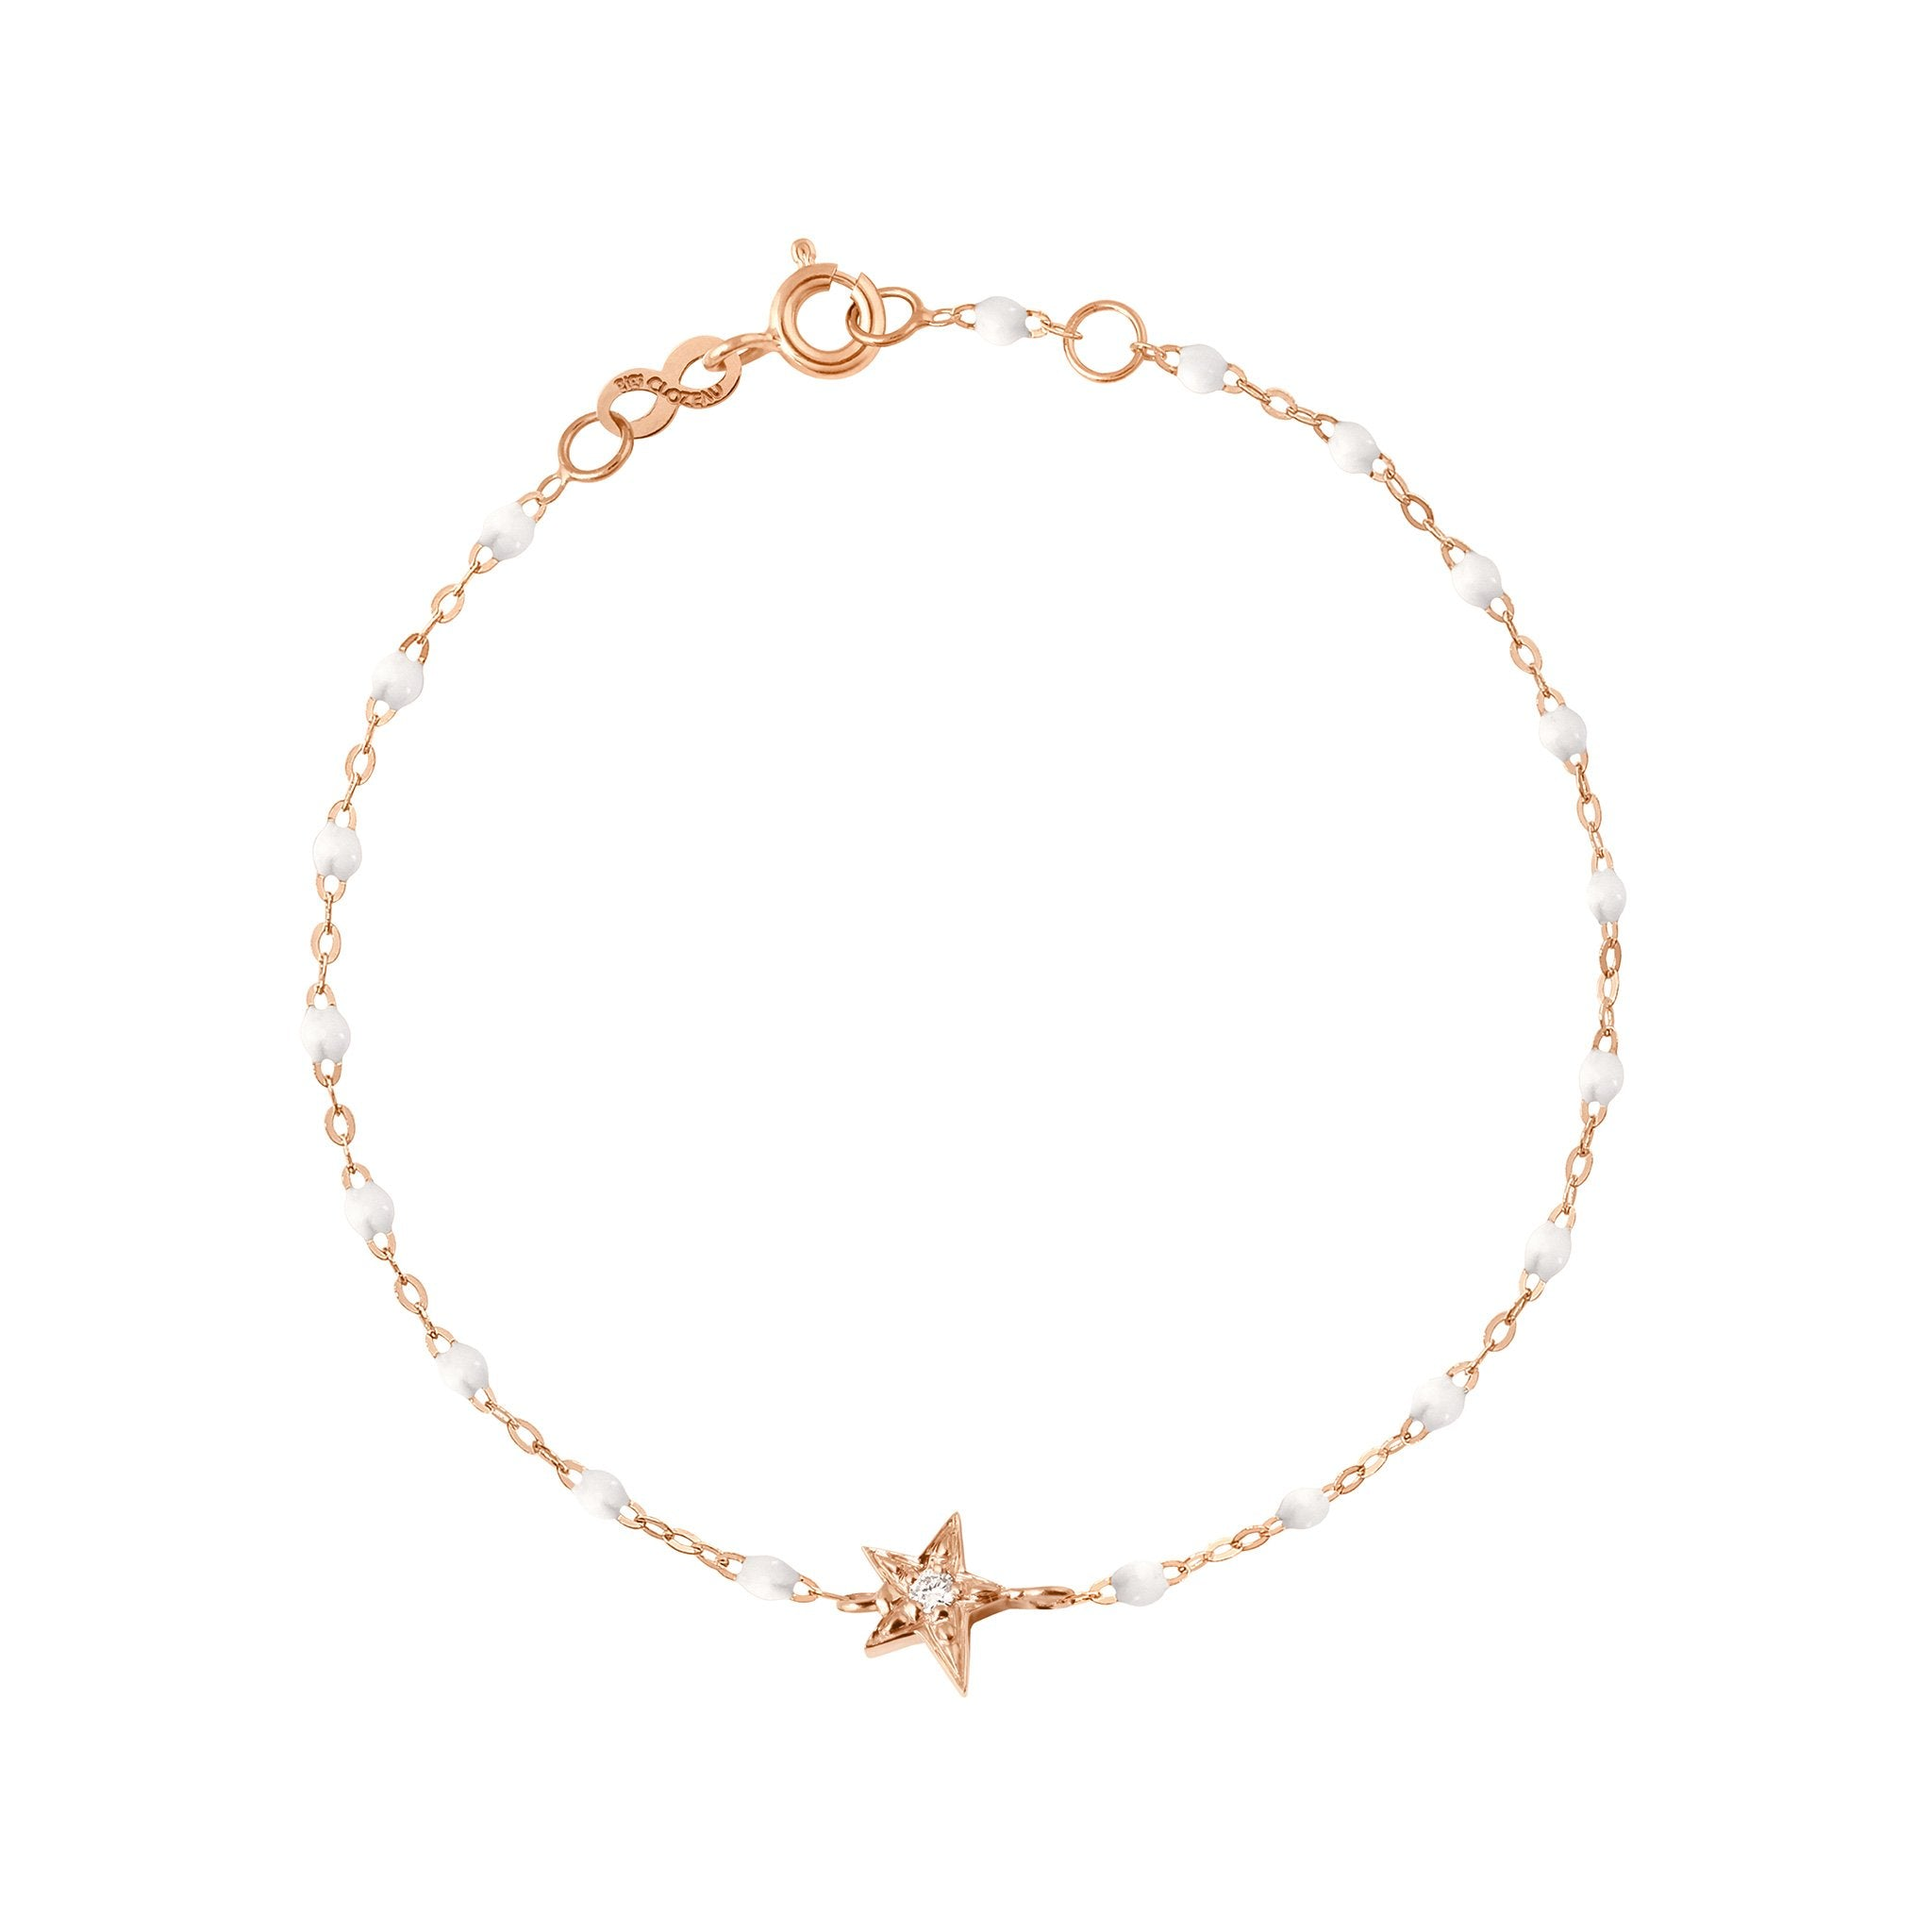 Gigi Clozeau - Star Classic Gigi White diamonds bracelet, Rose Gold, 6.7""